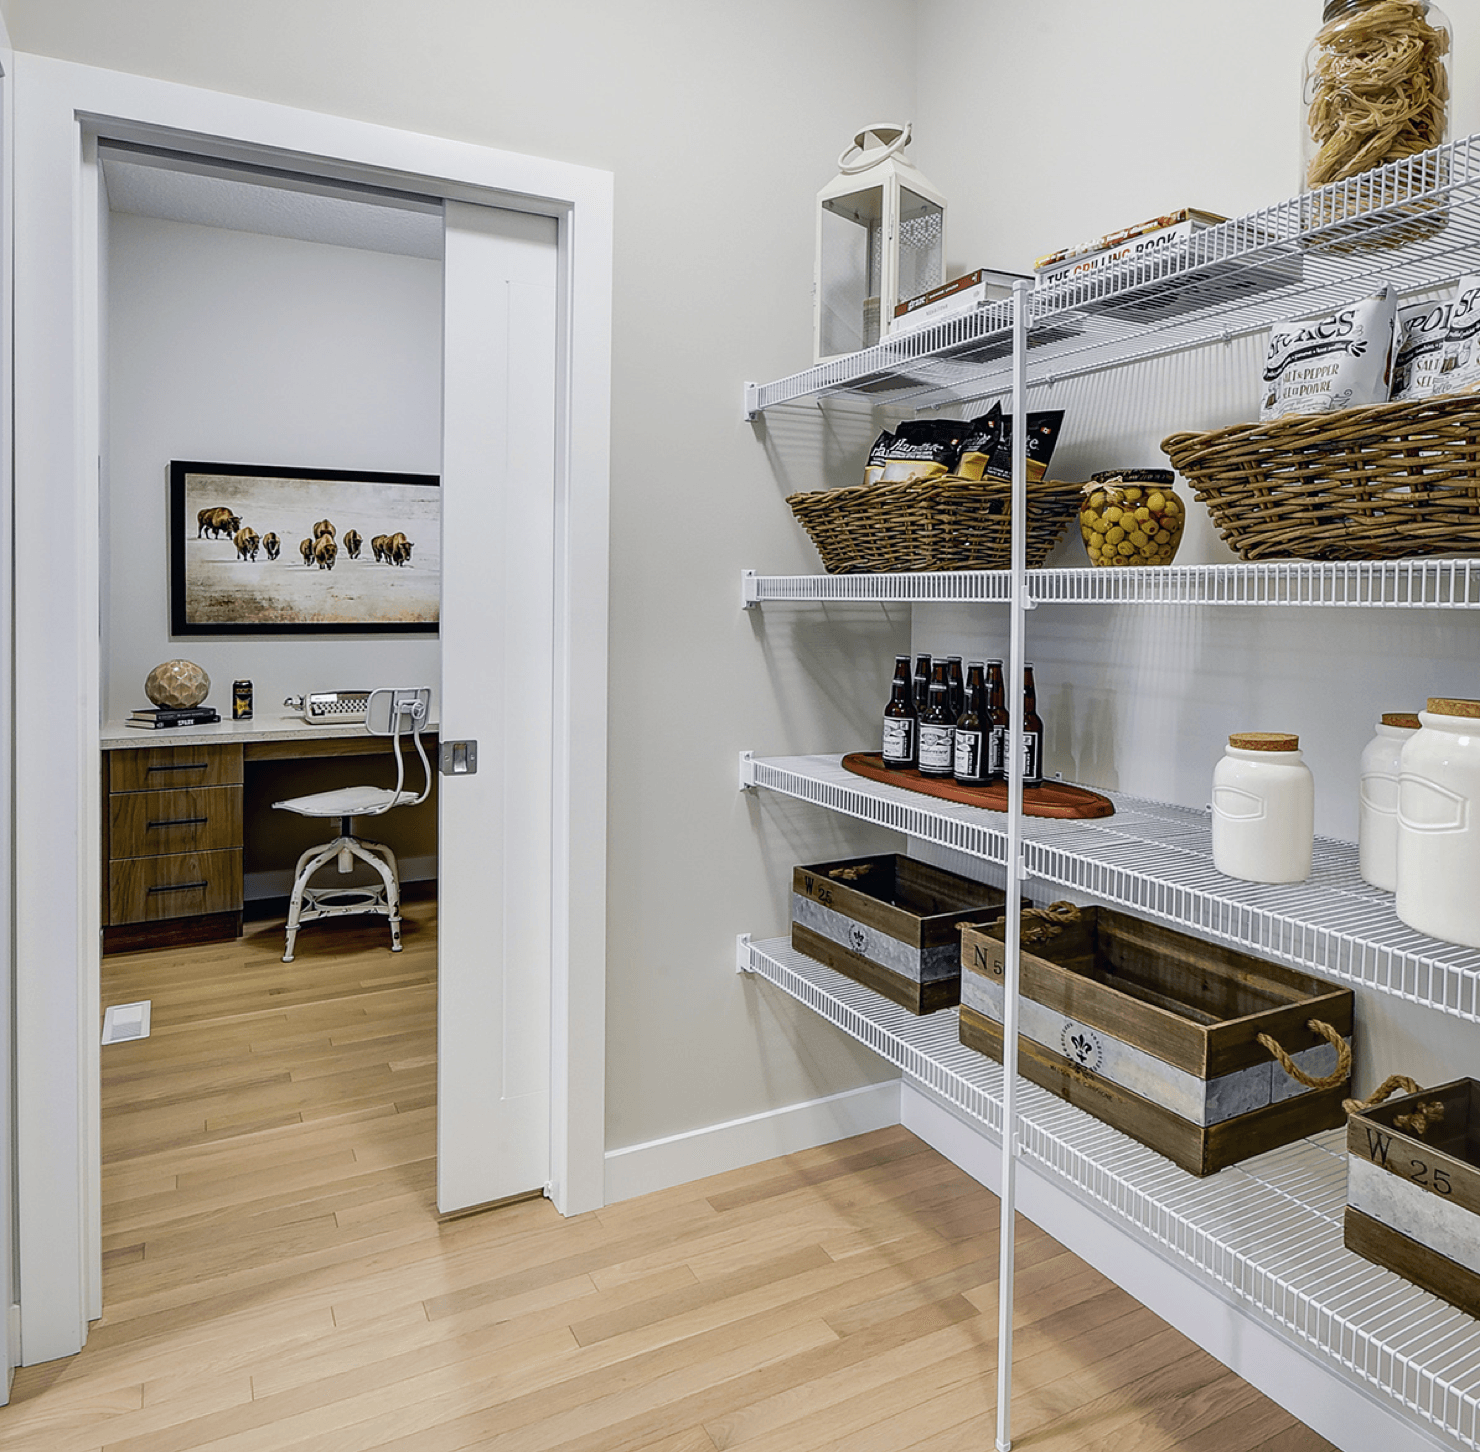 Introducing the Hamilton Pantry Image